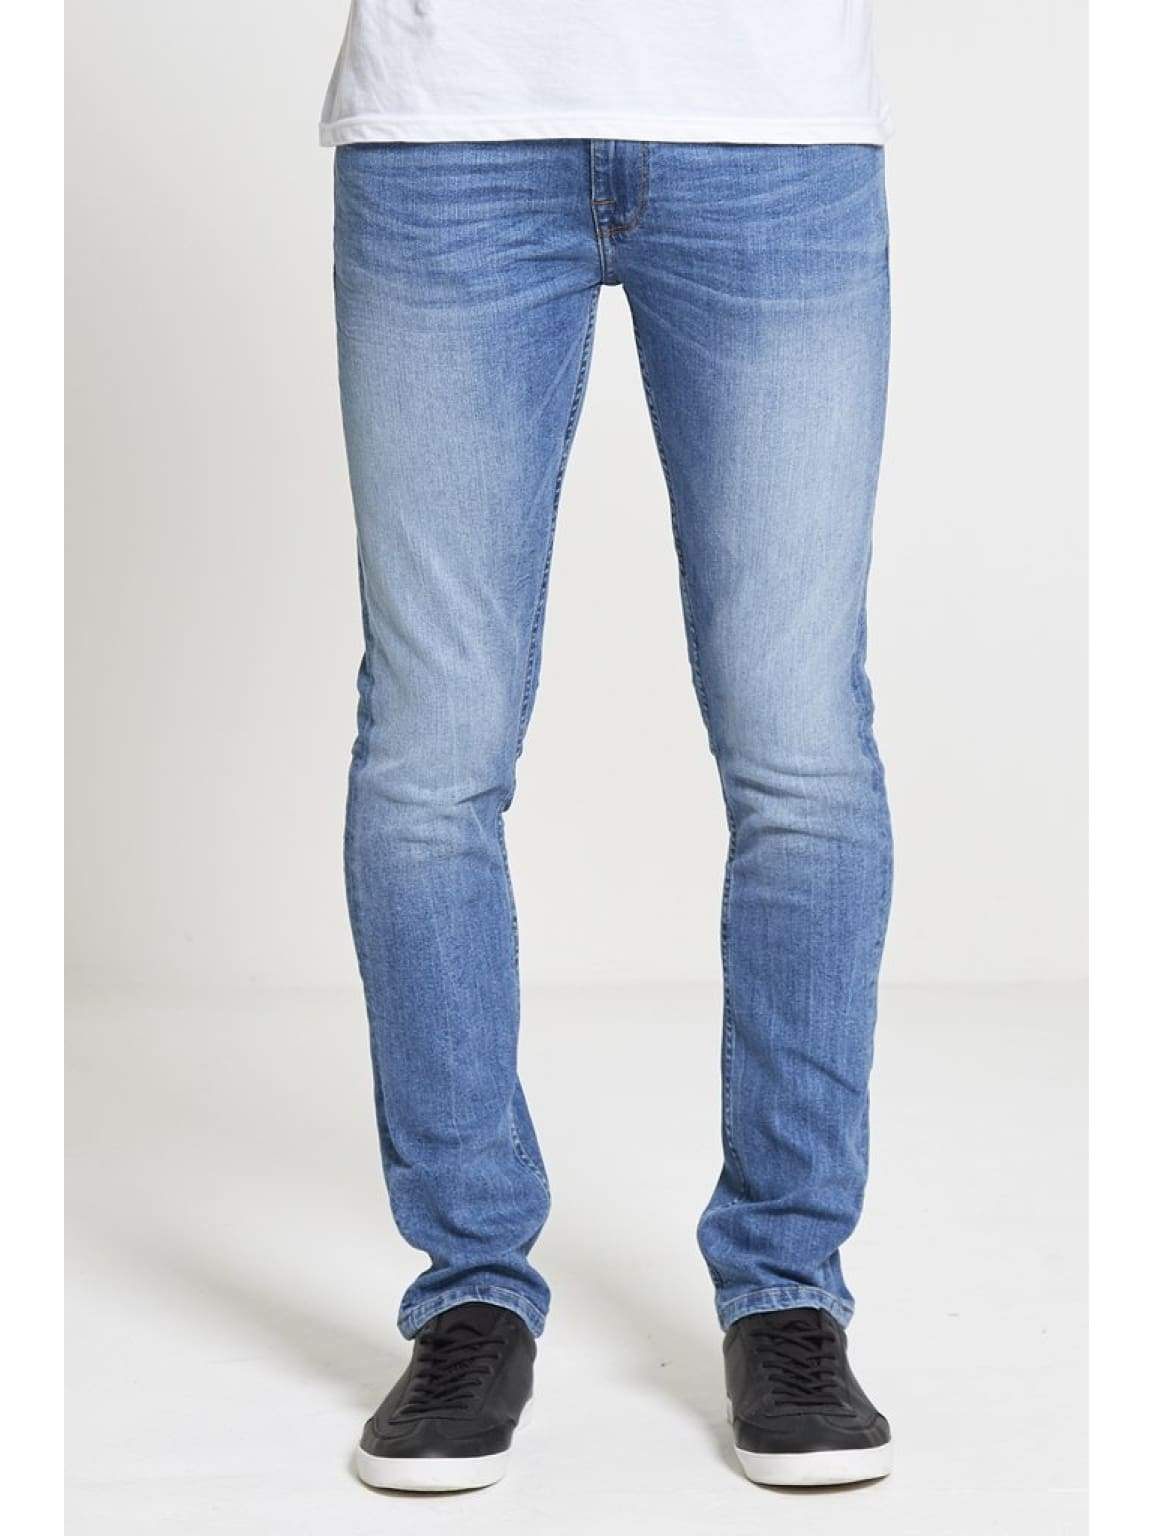 ACE Slim Stretch Jeans In Light Wash - Jeans